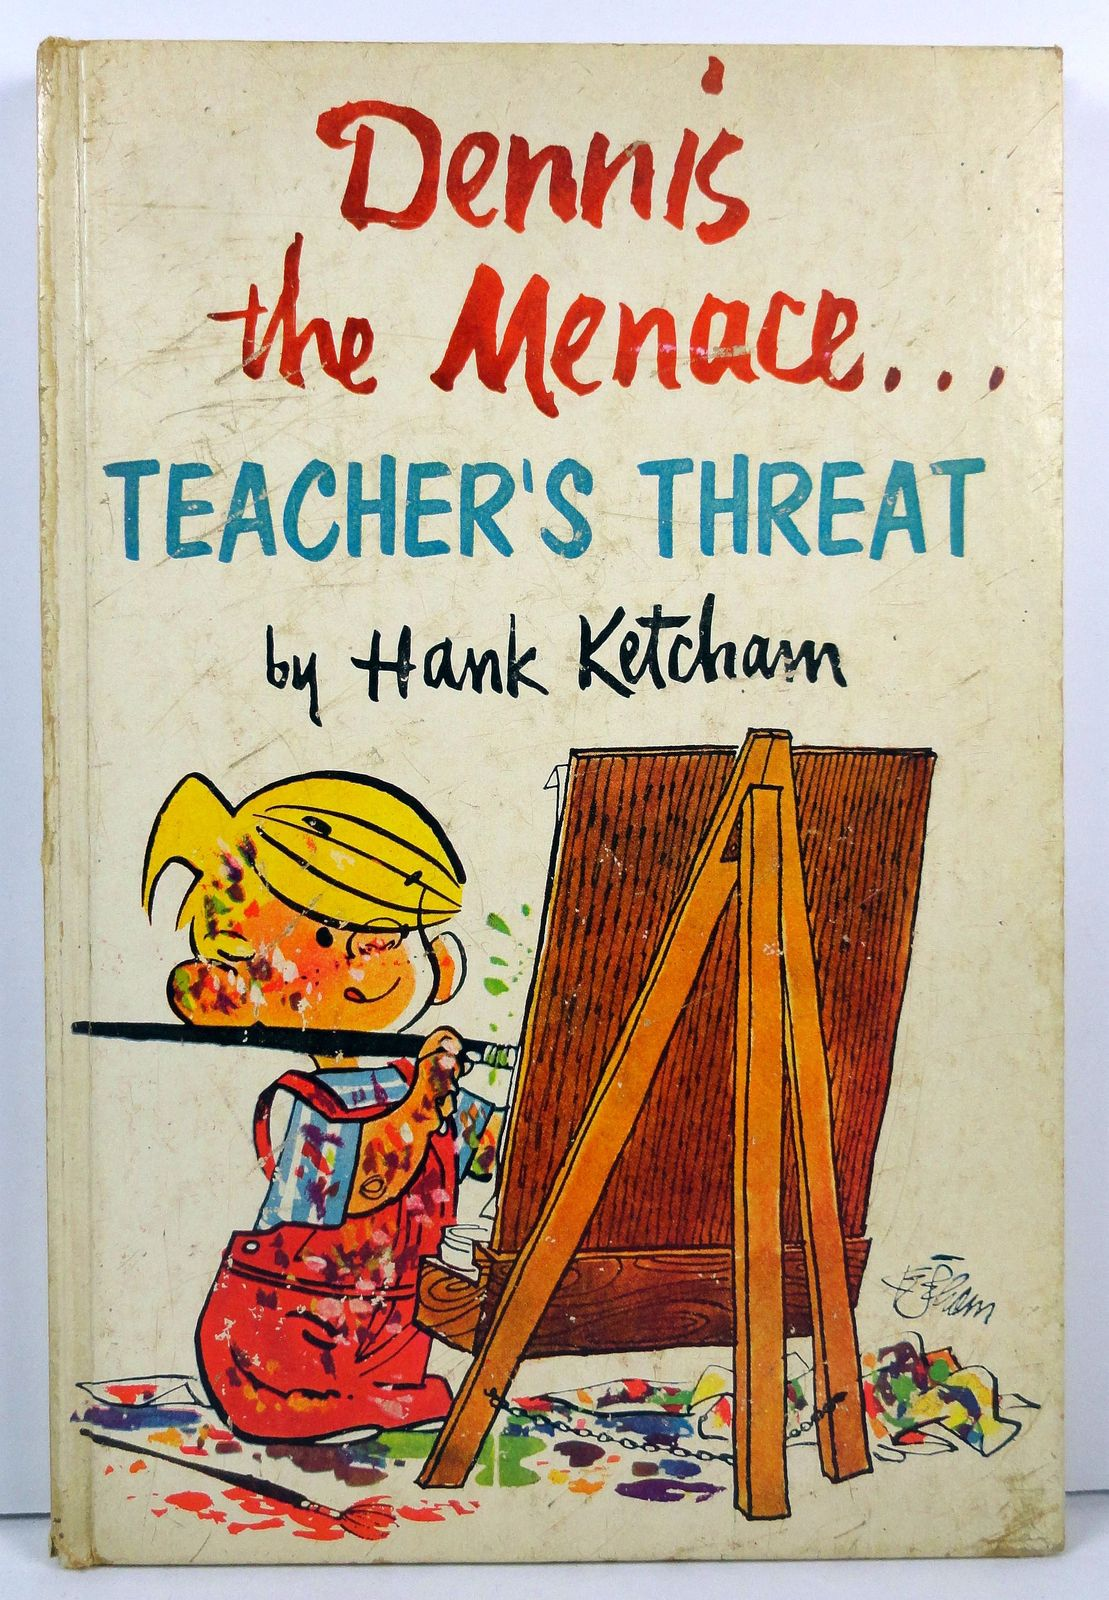 Primary image for Dennis the Menace Teacher's Threat by Hank Ketcham 1959 Holt